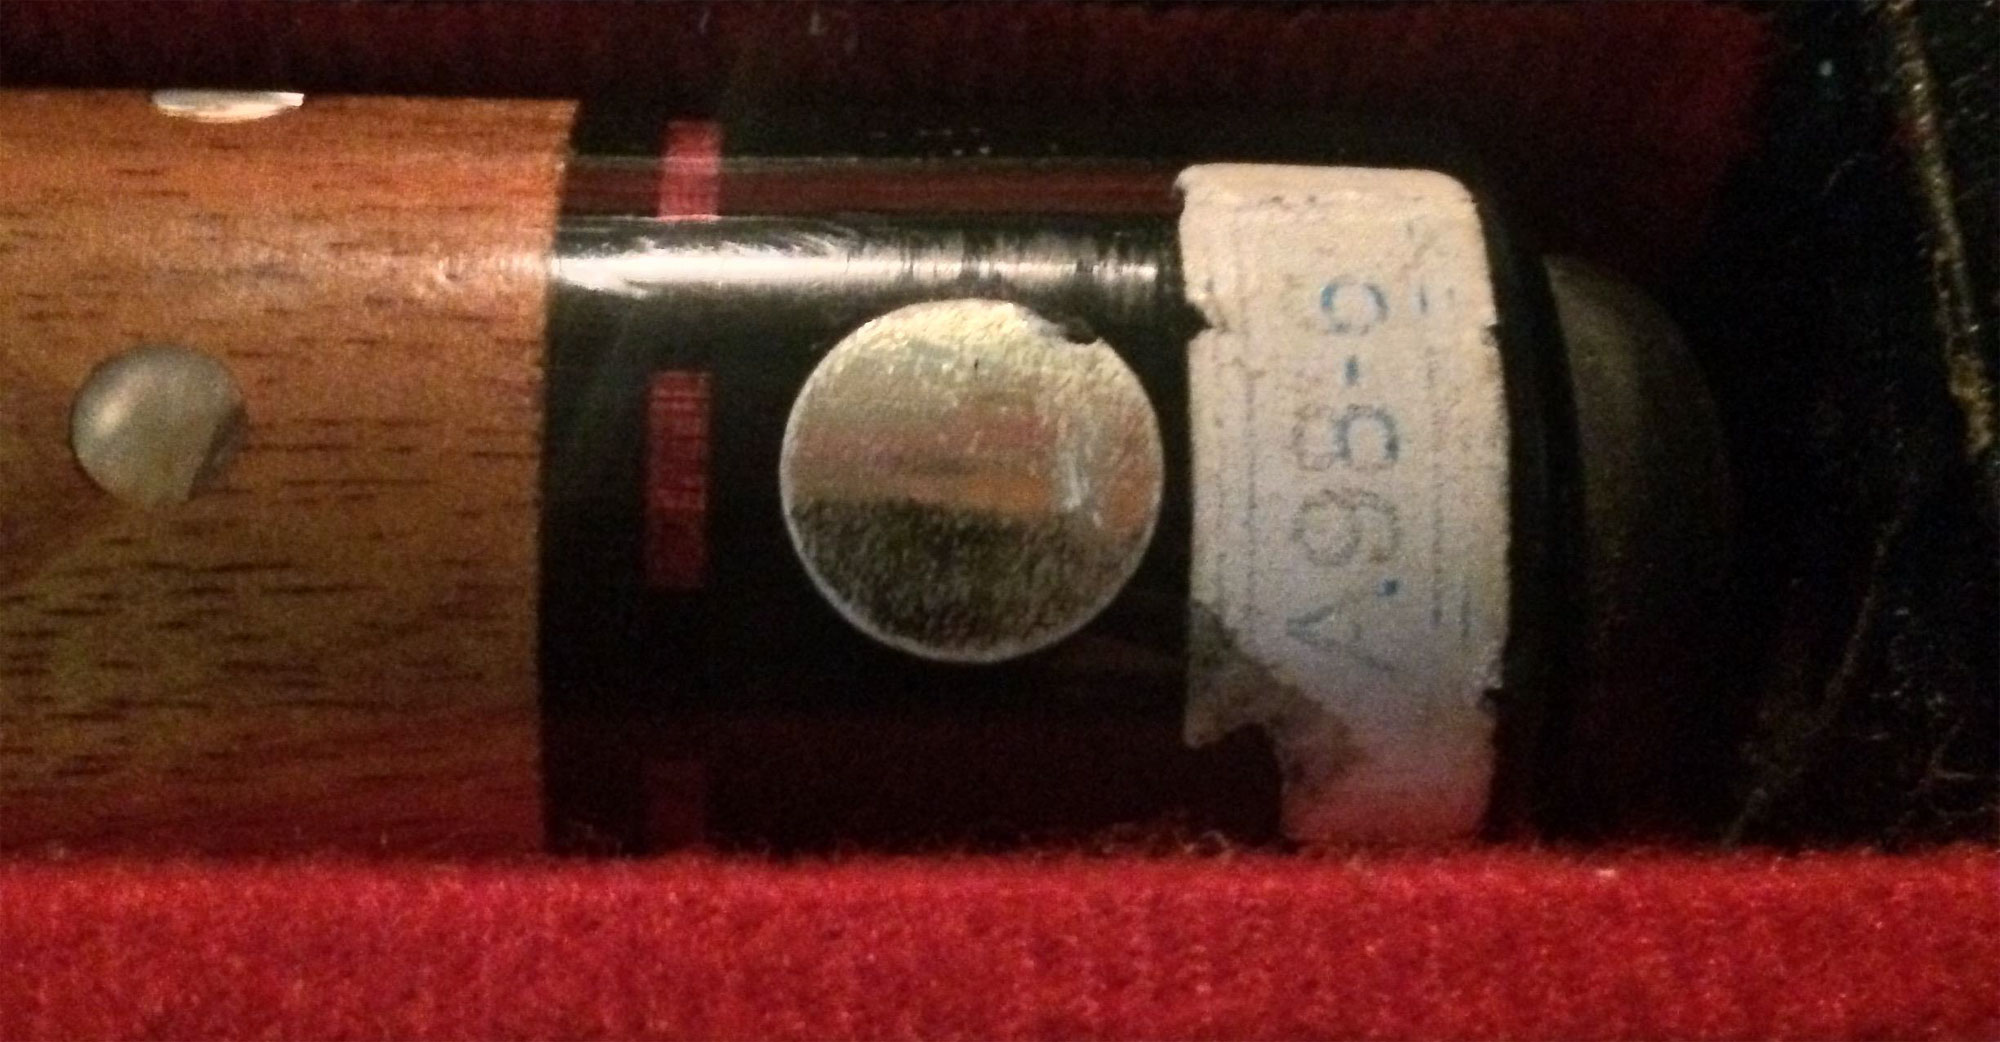 Helmstetter A98 6 Pool Cue Value Info And Background